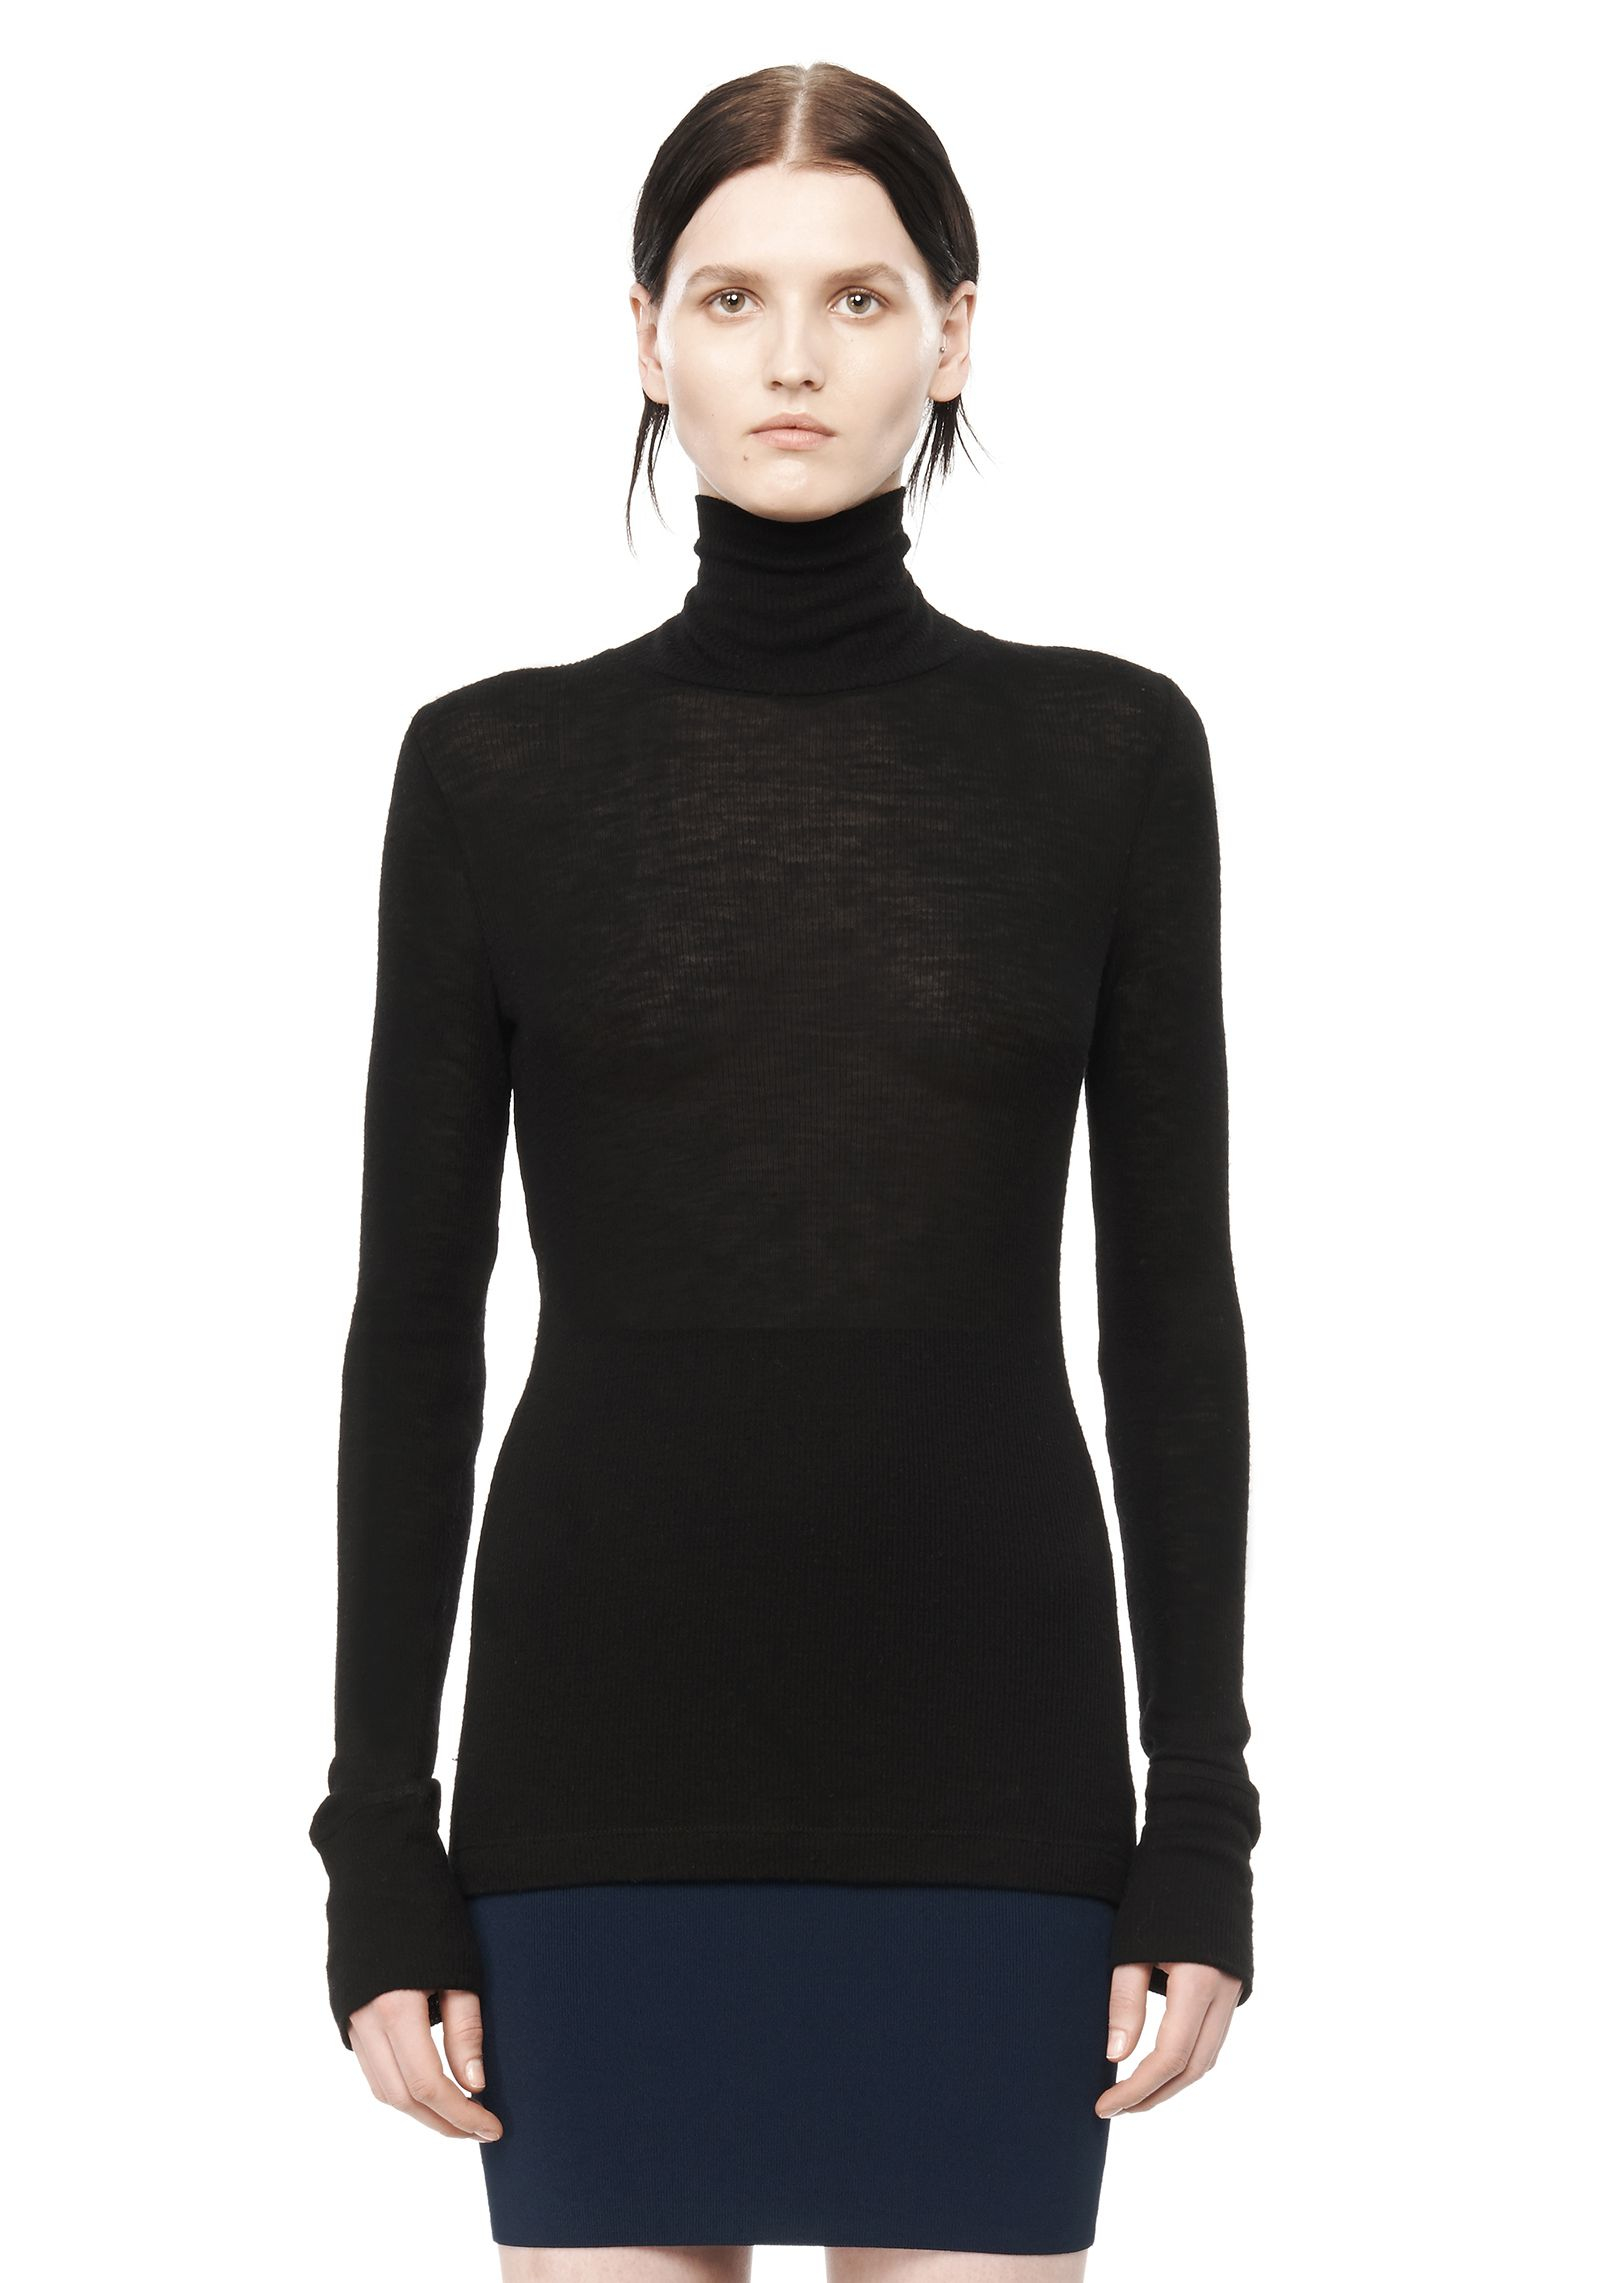 d553a2a4133 T by alexander wang Ribbed Long Sleeve Turtleneck in Black